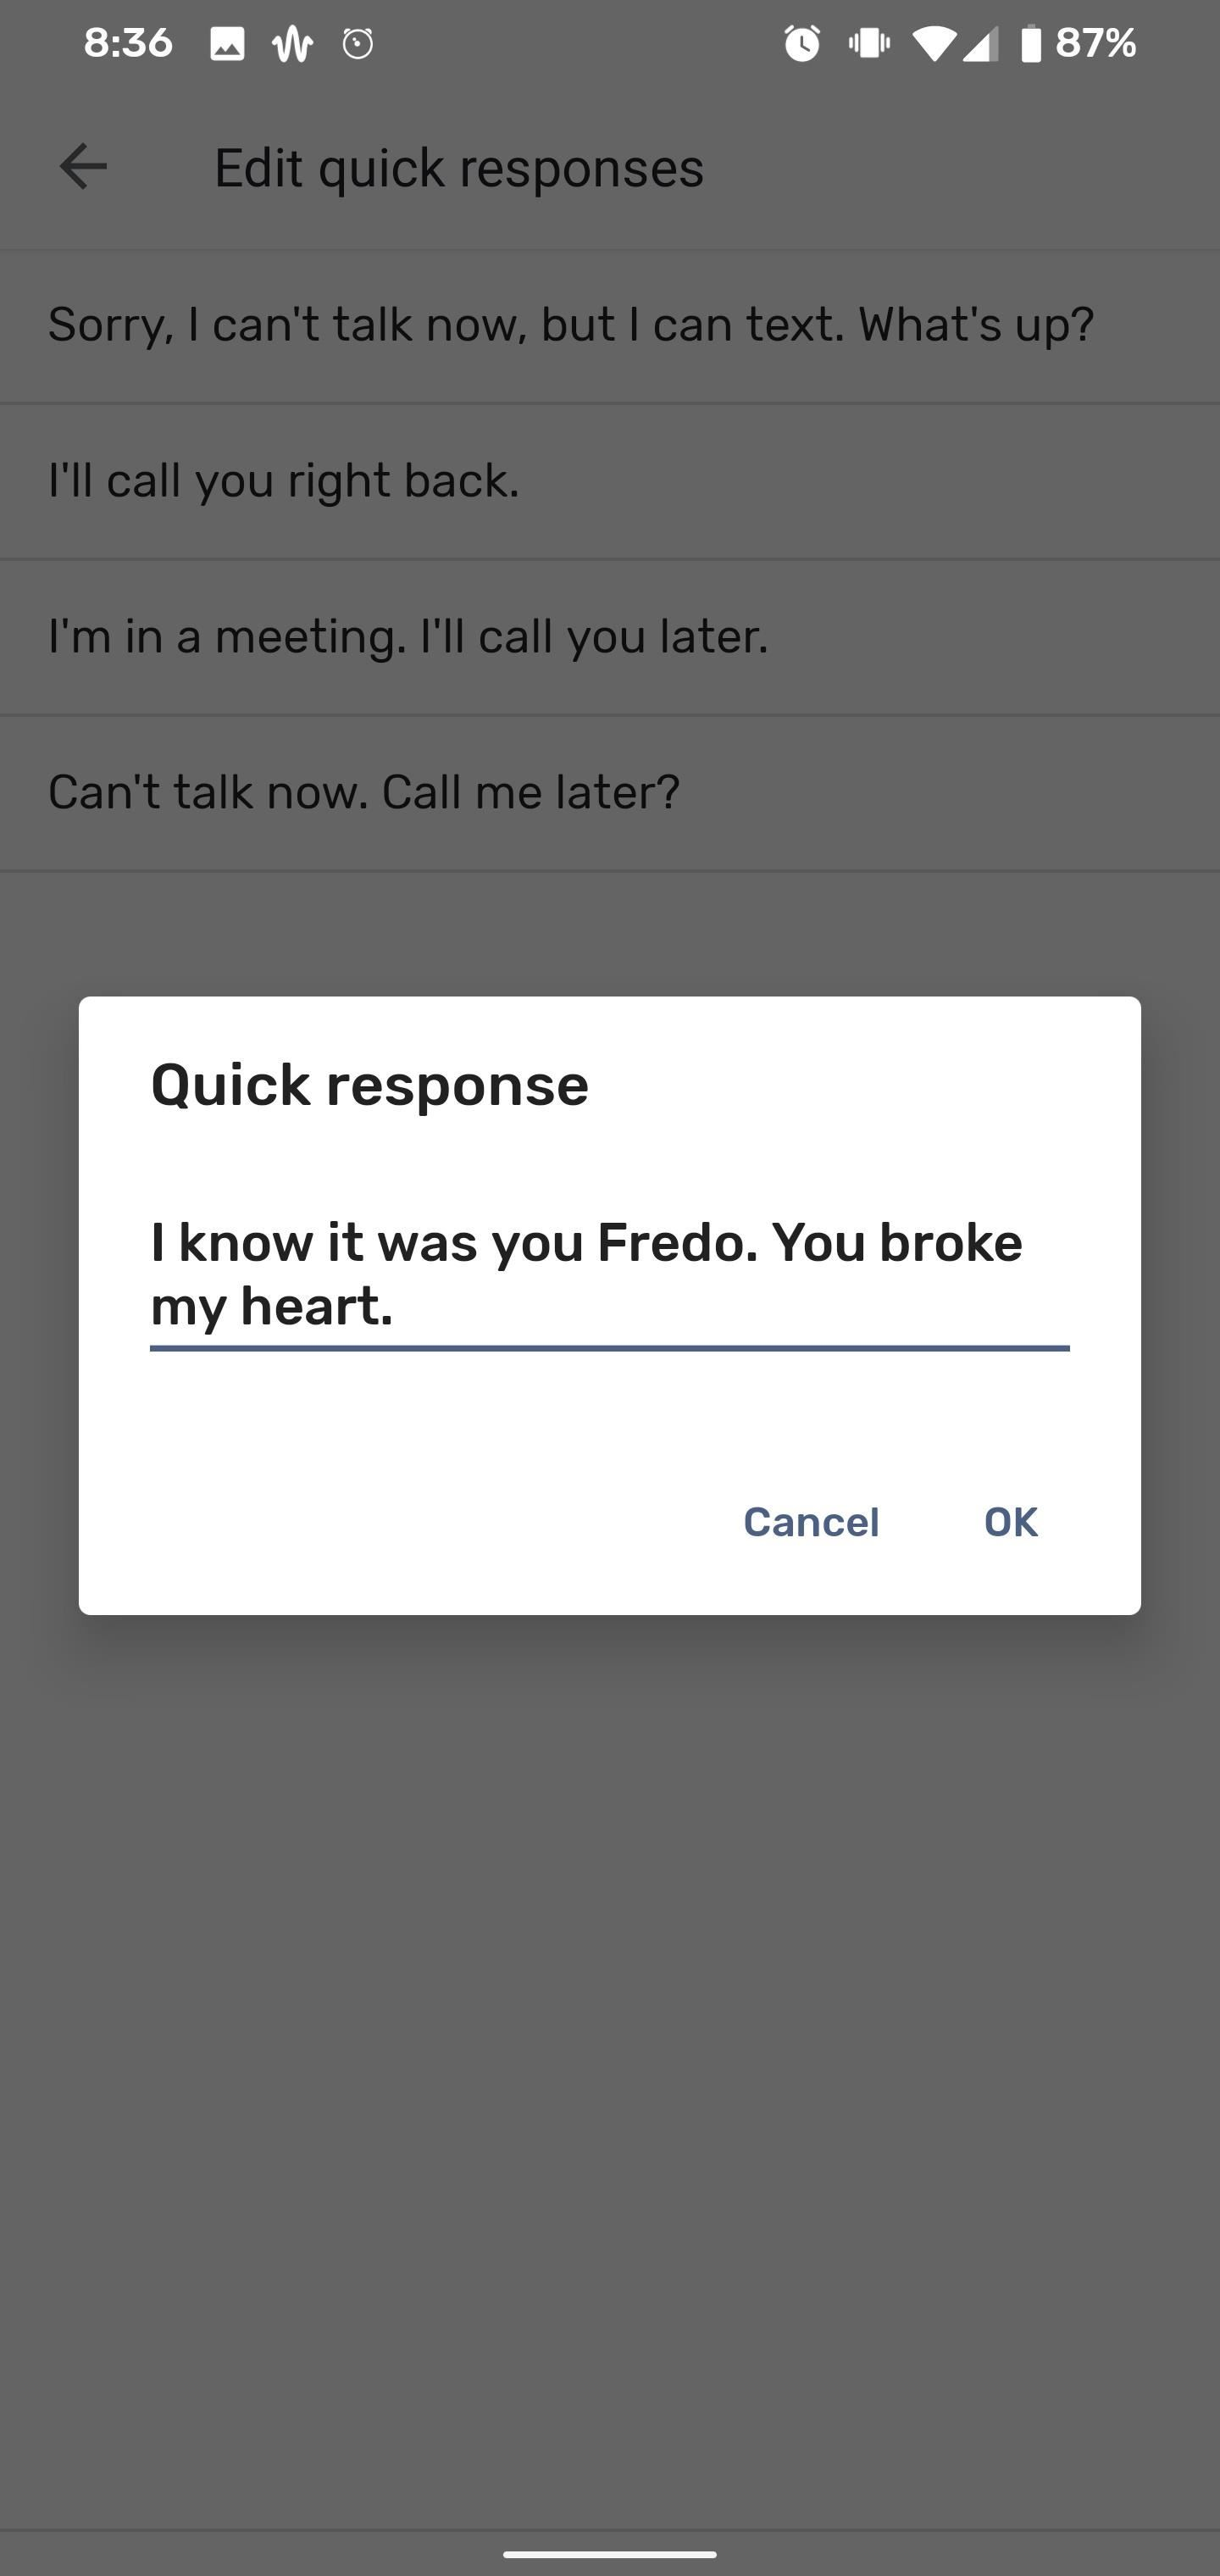 How to Customize the Quick Responses for Declining Calls in the Google Phone App